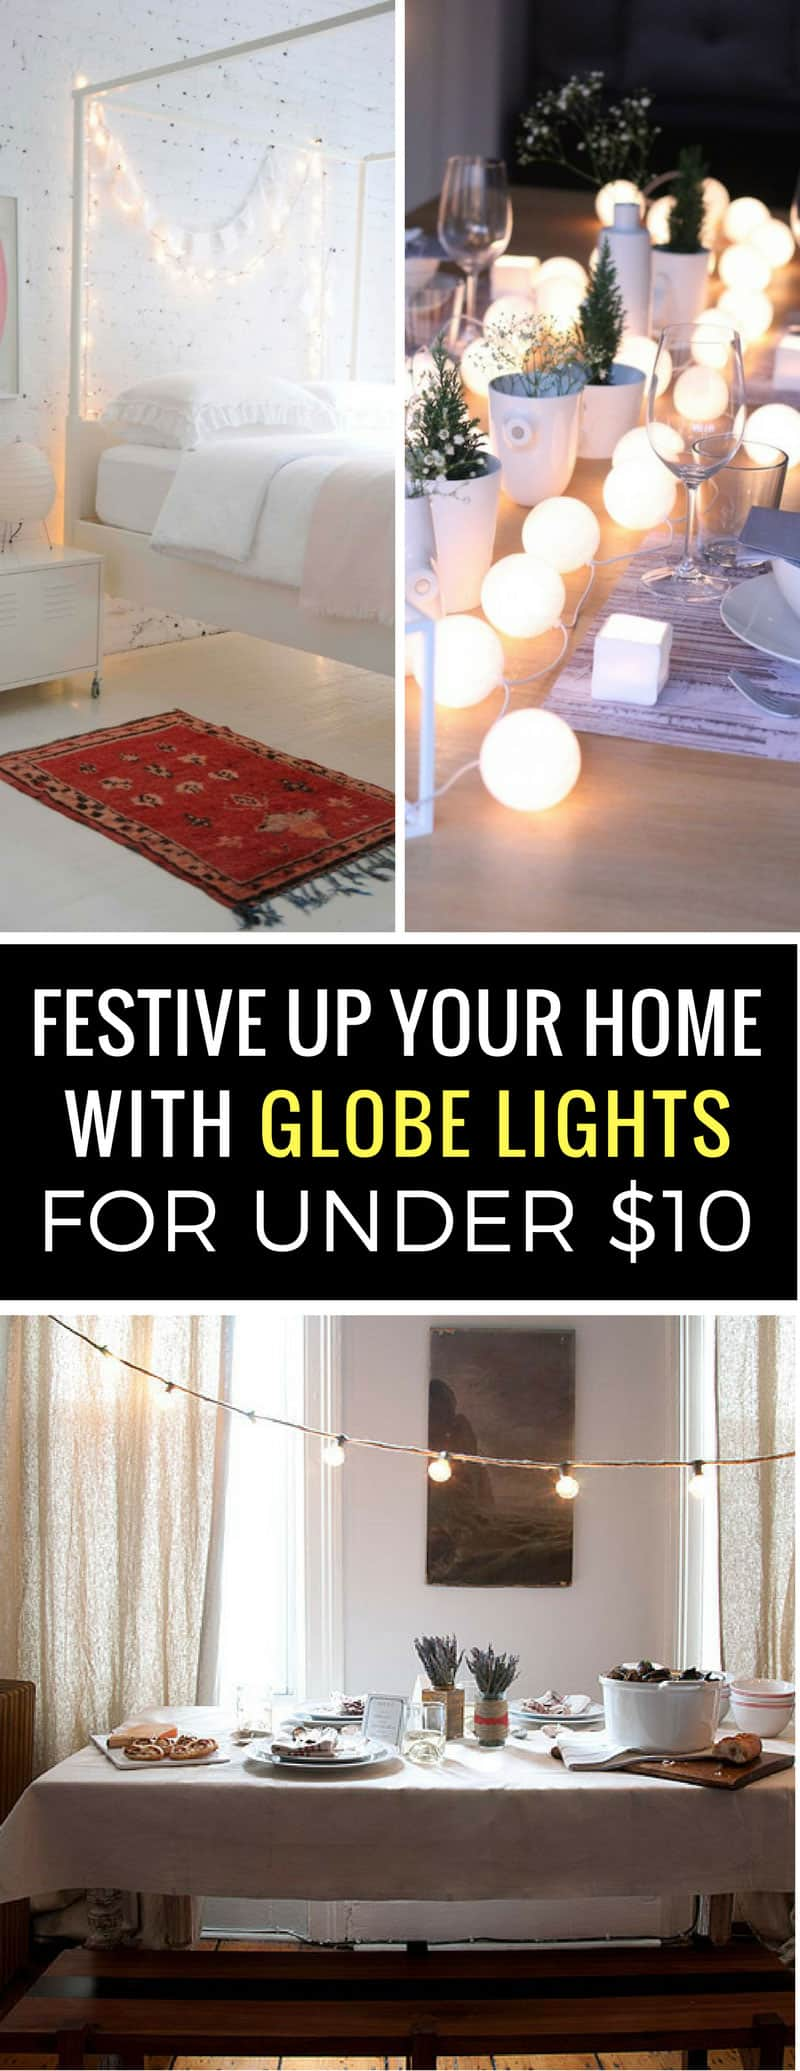 Loving these different ways to use string globe lights to make my home look pretty - and they're cheap too!